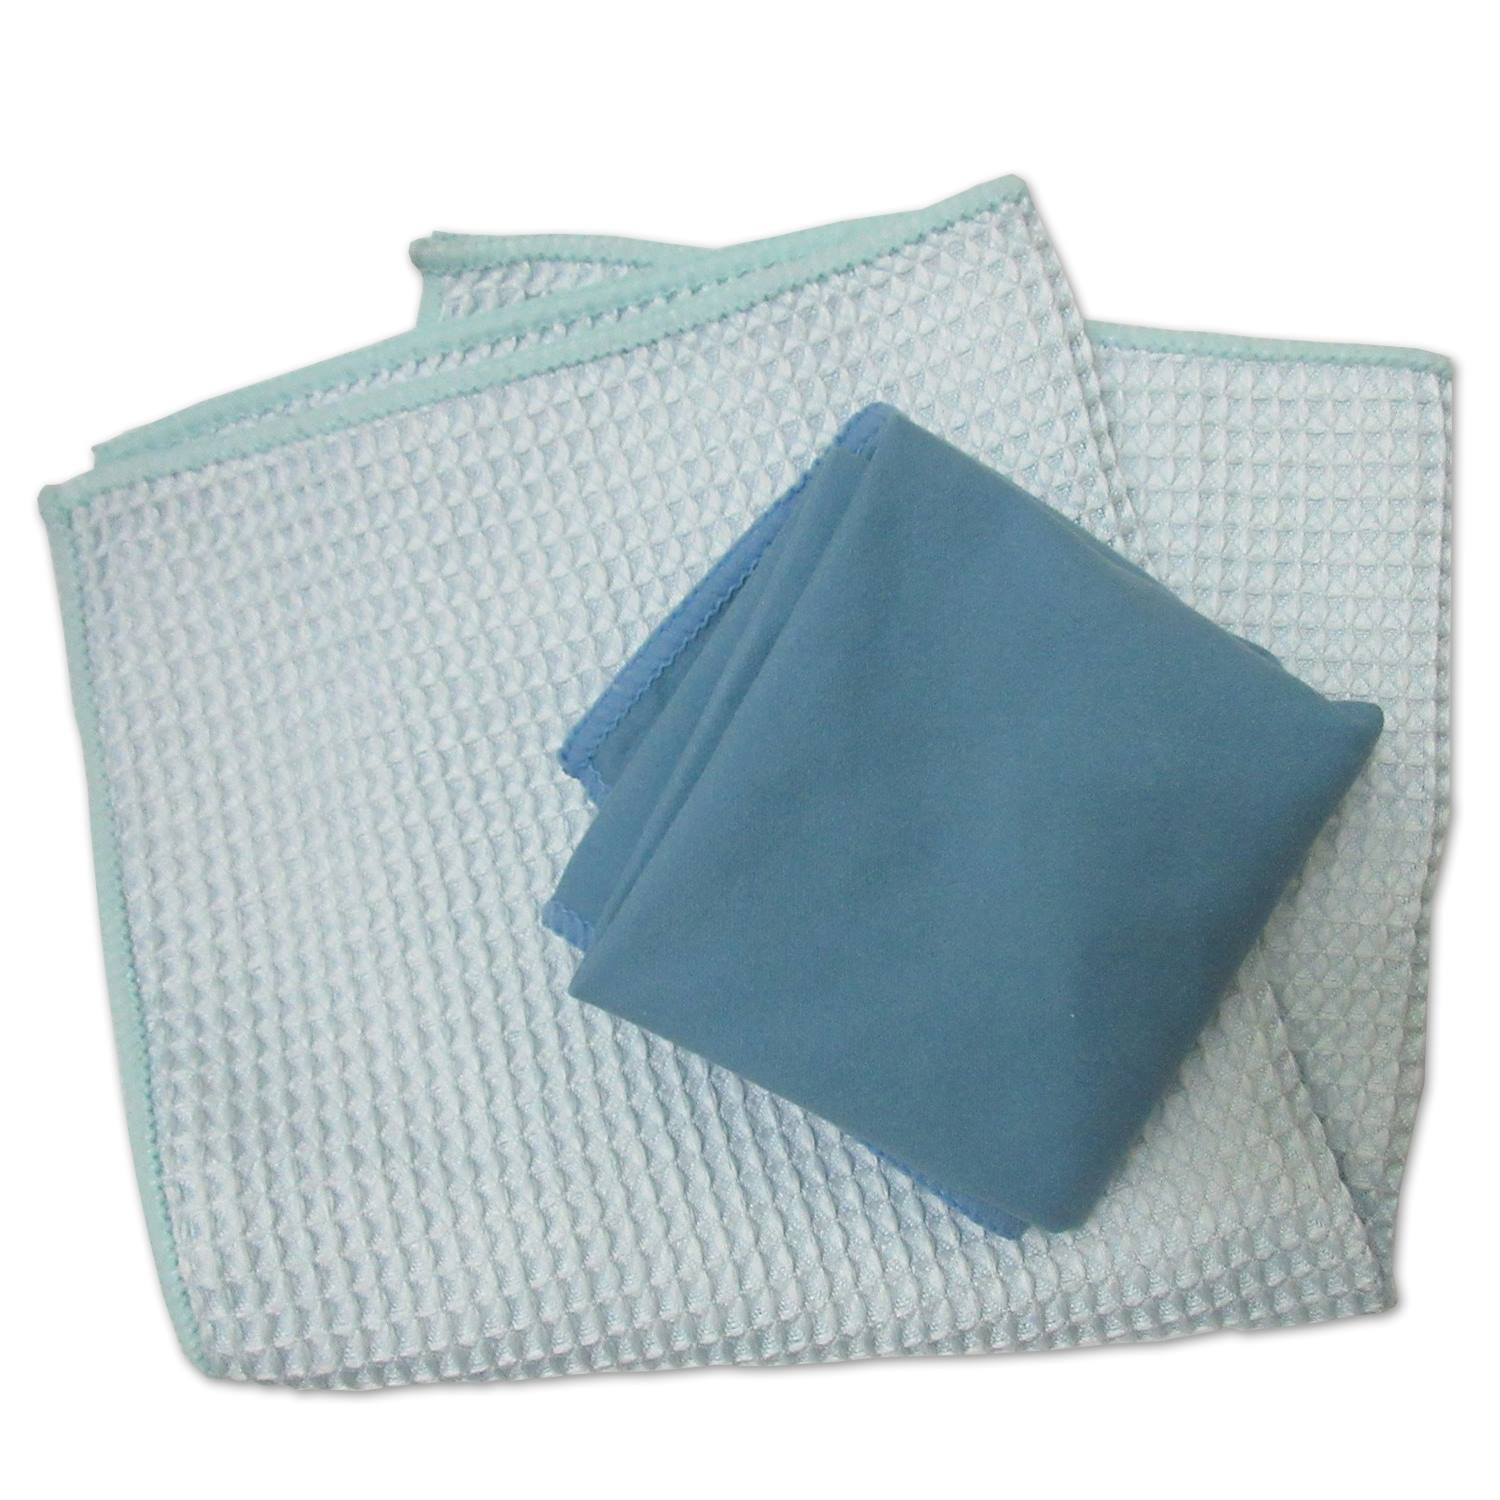 COMFIT MICROFIBER WINDOW AND MIRROR CLEANING & POLISHING STREAK-FREE, LINT-FREE NO CHEMICALS PACK